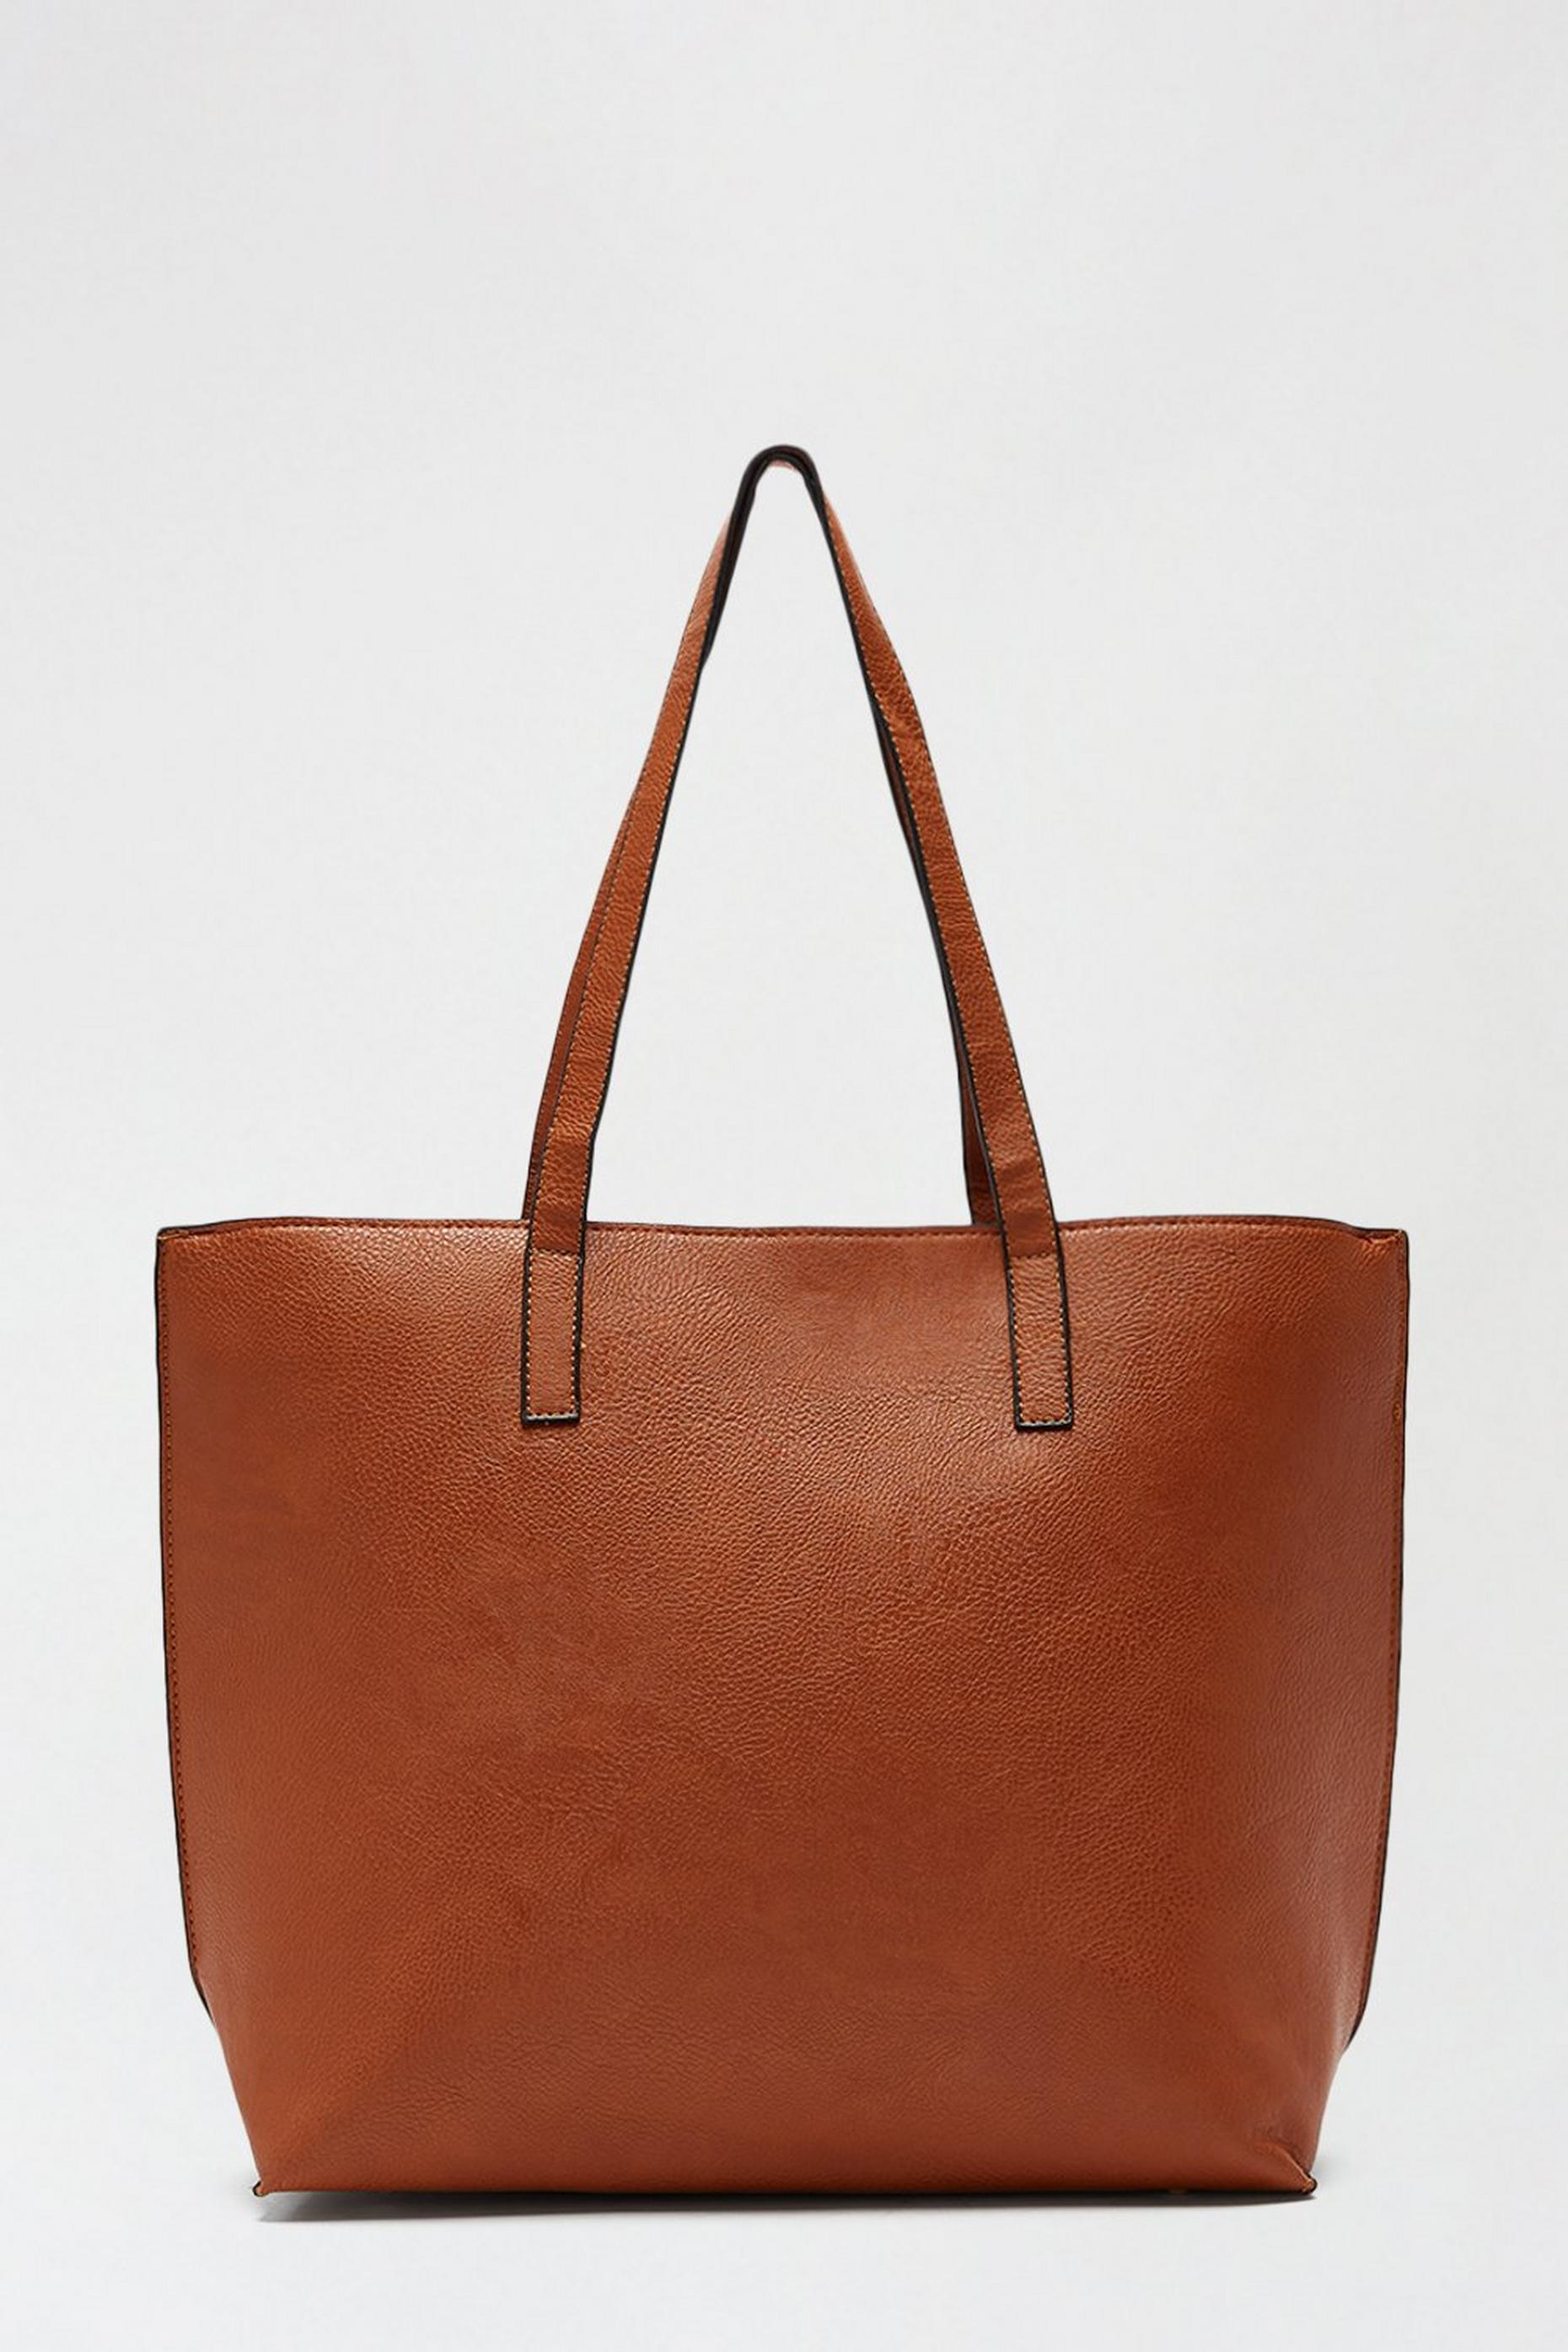 Tan Shopper Bag